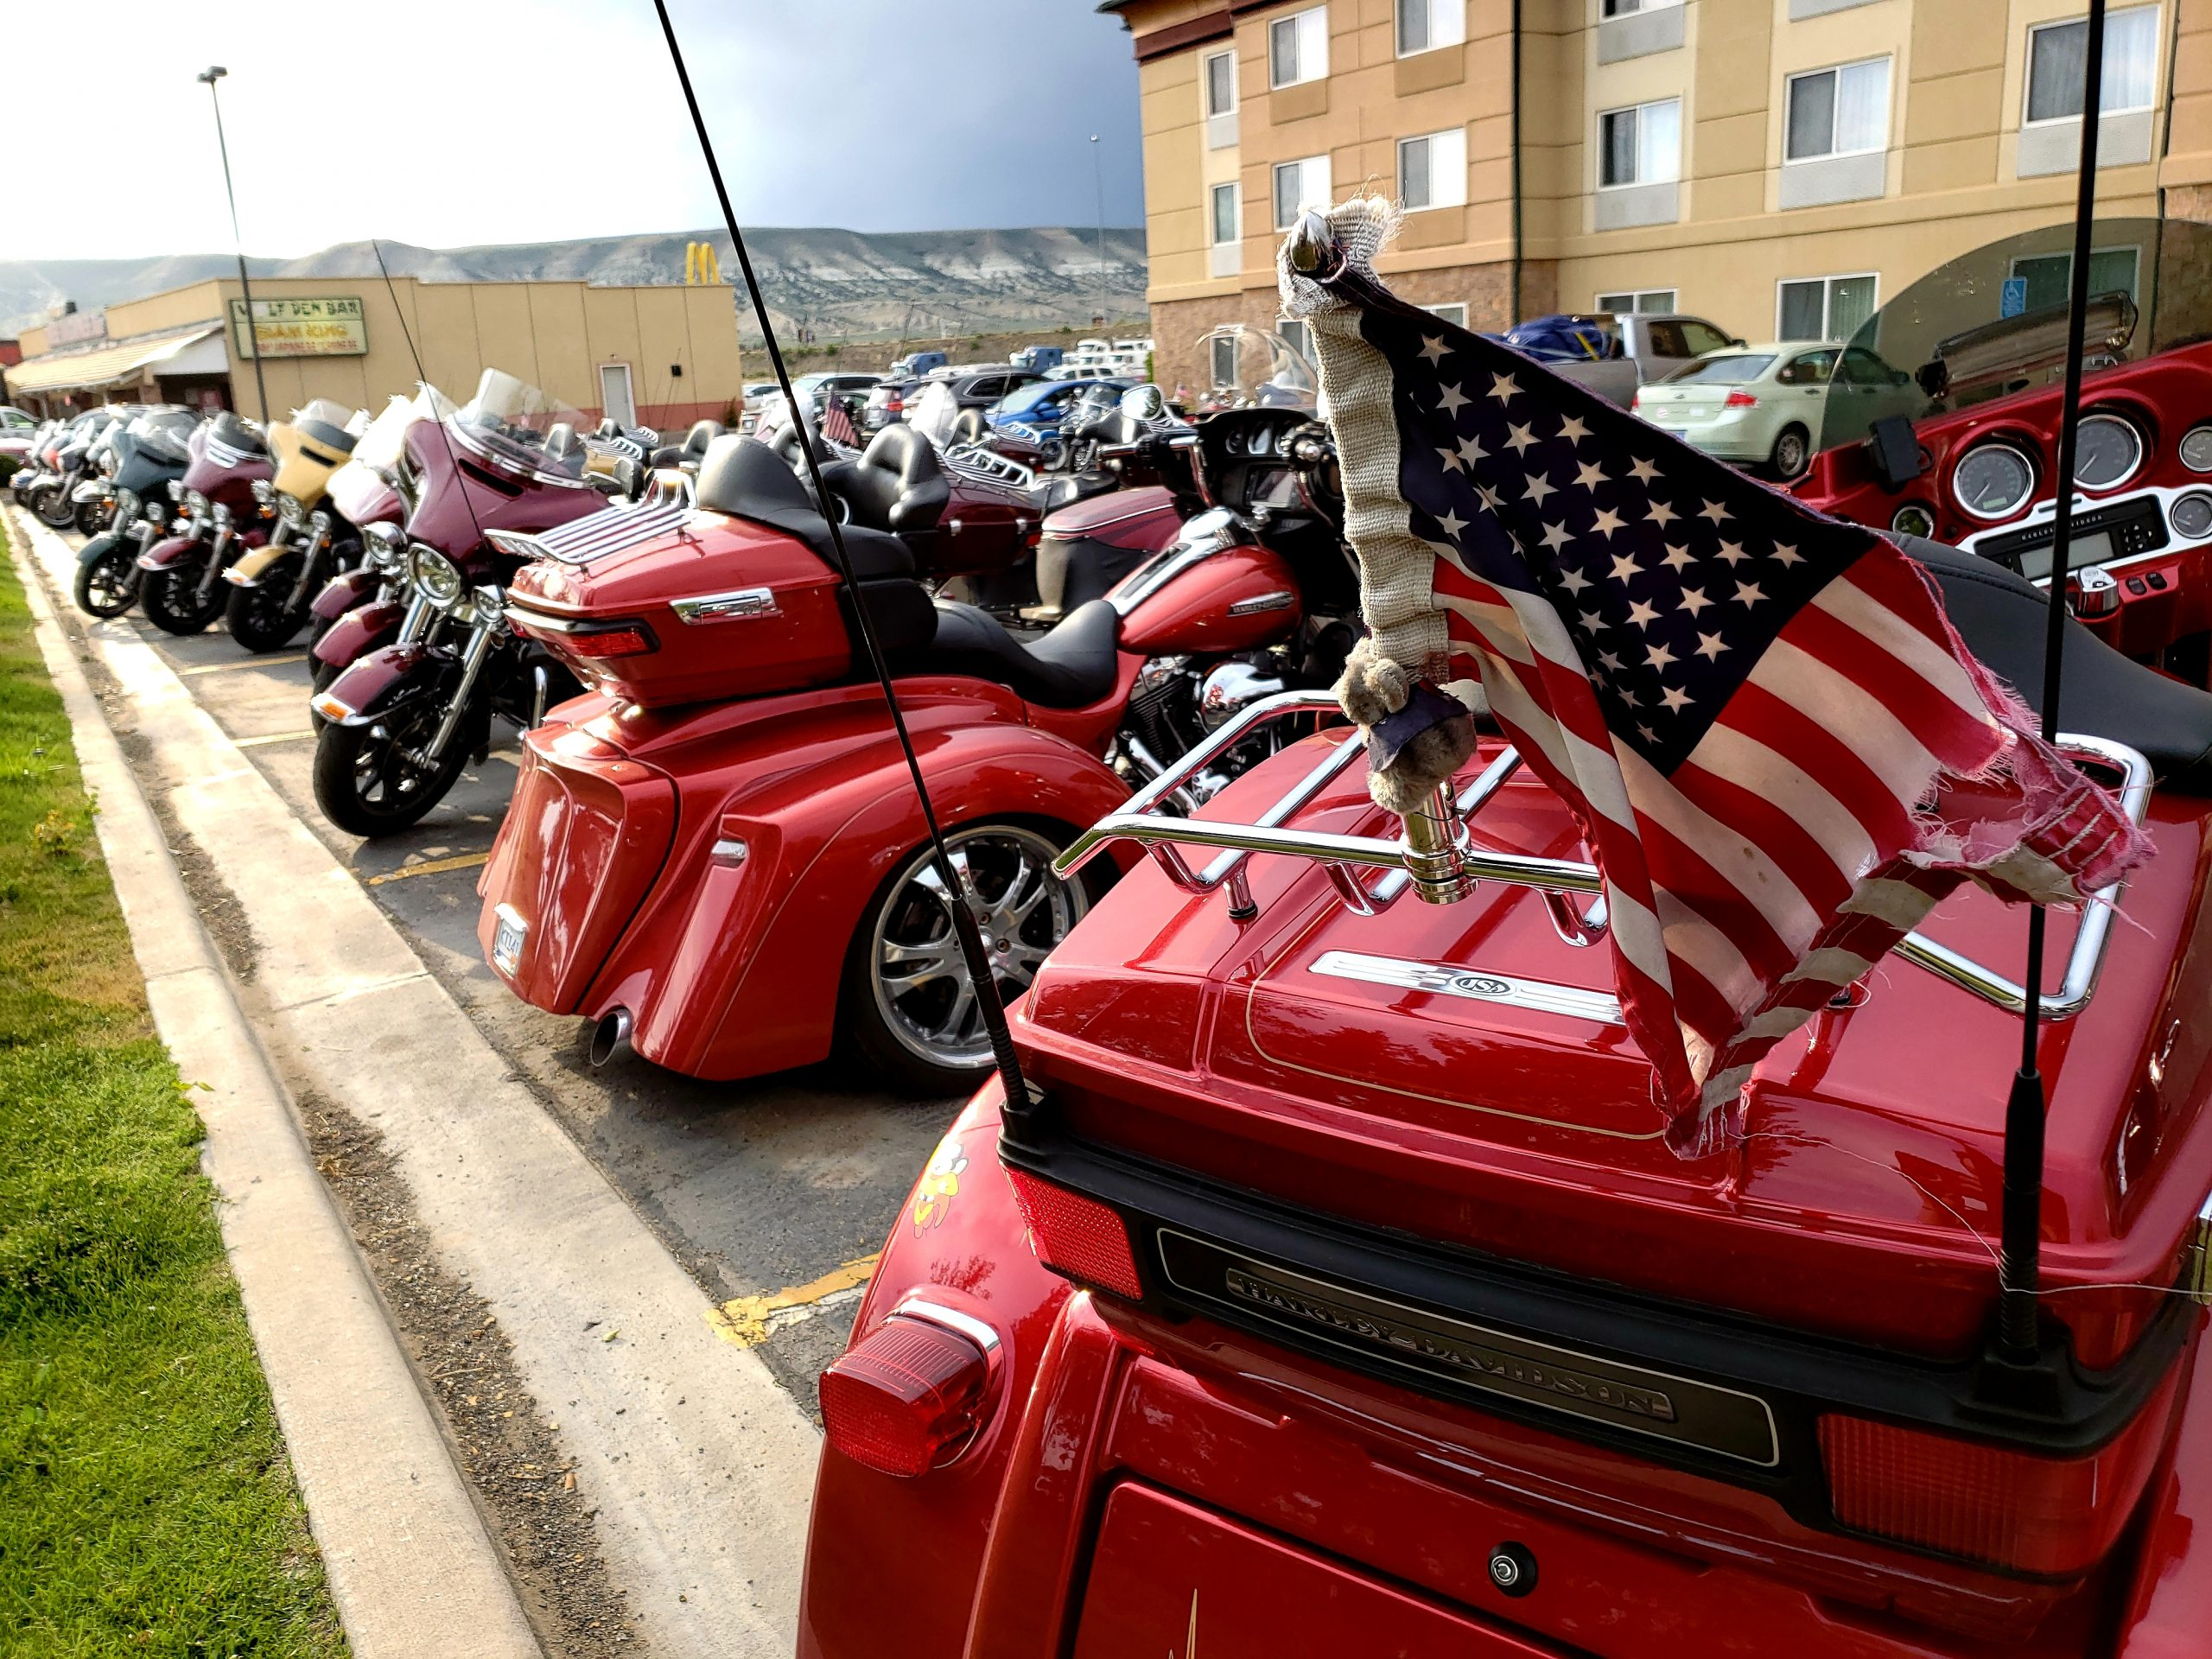 2018 R.U.S.H. Motorcycle Rally Commences in Rock Springs